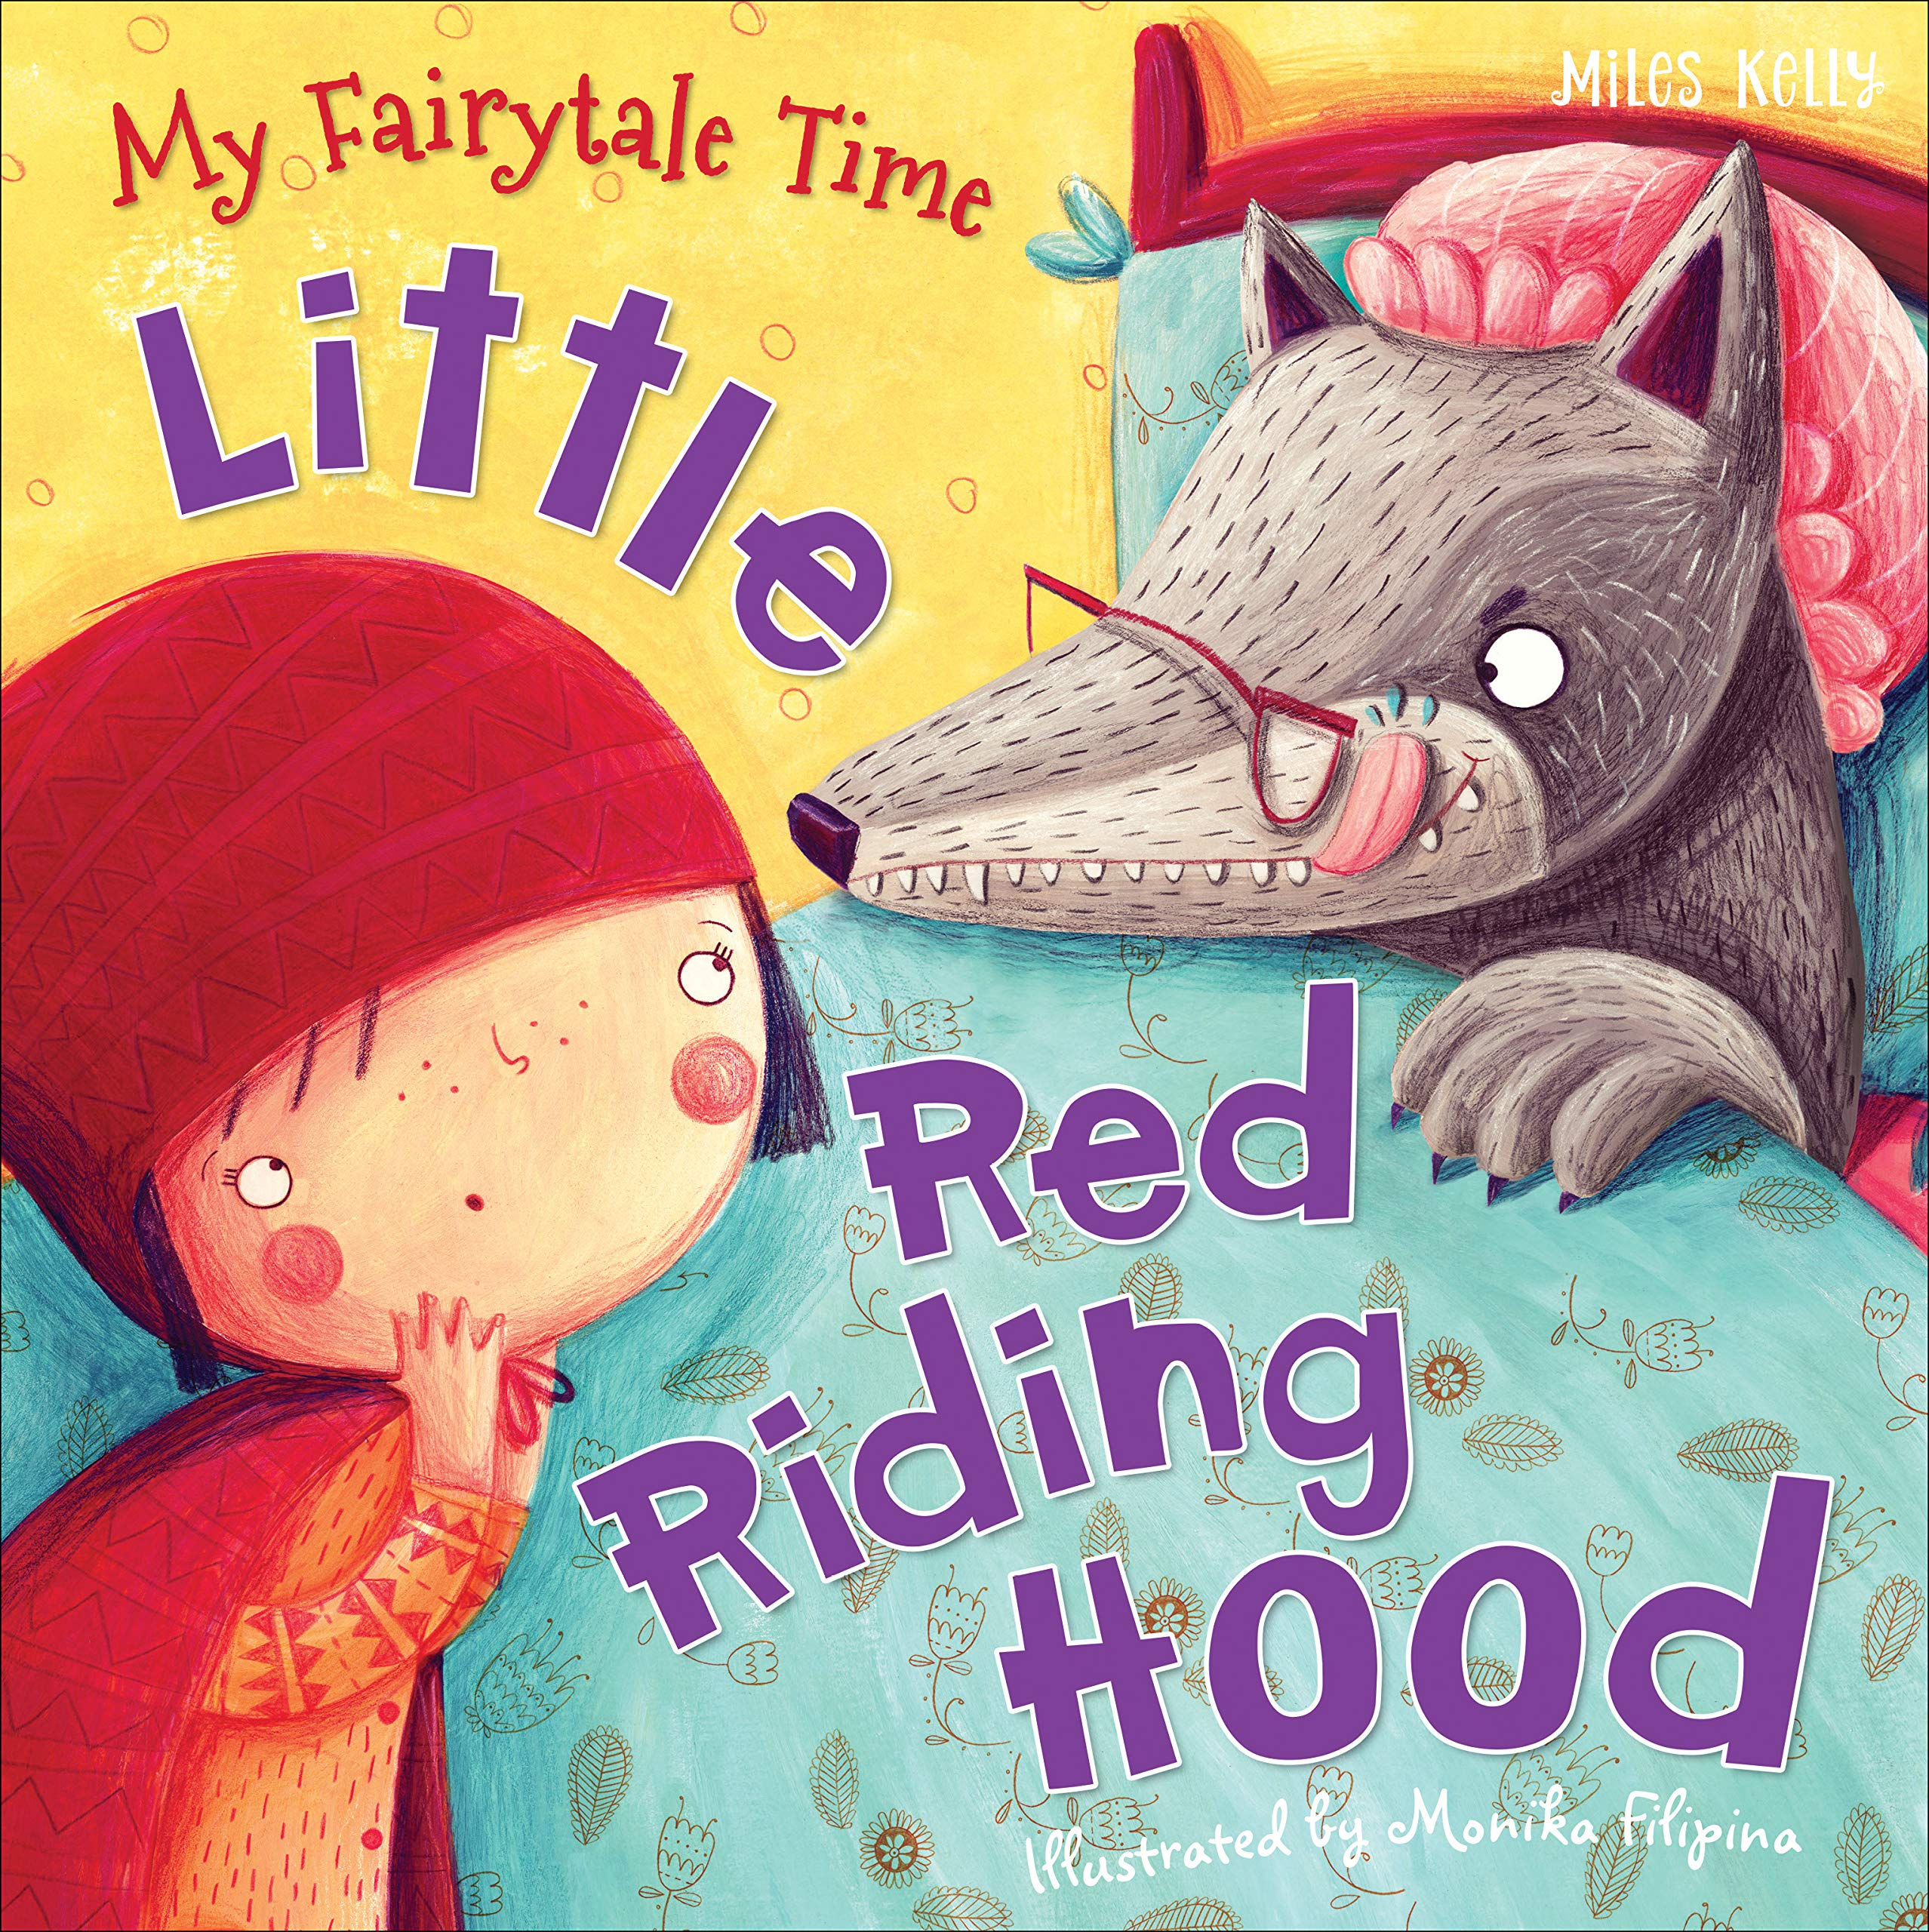 My Fairytale Time Little Red Riding Hood (Fairytales): Amazon.co.uk: Miles Kelly: 9781782096542: Books